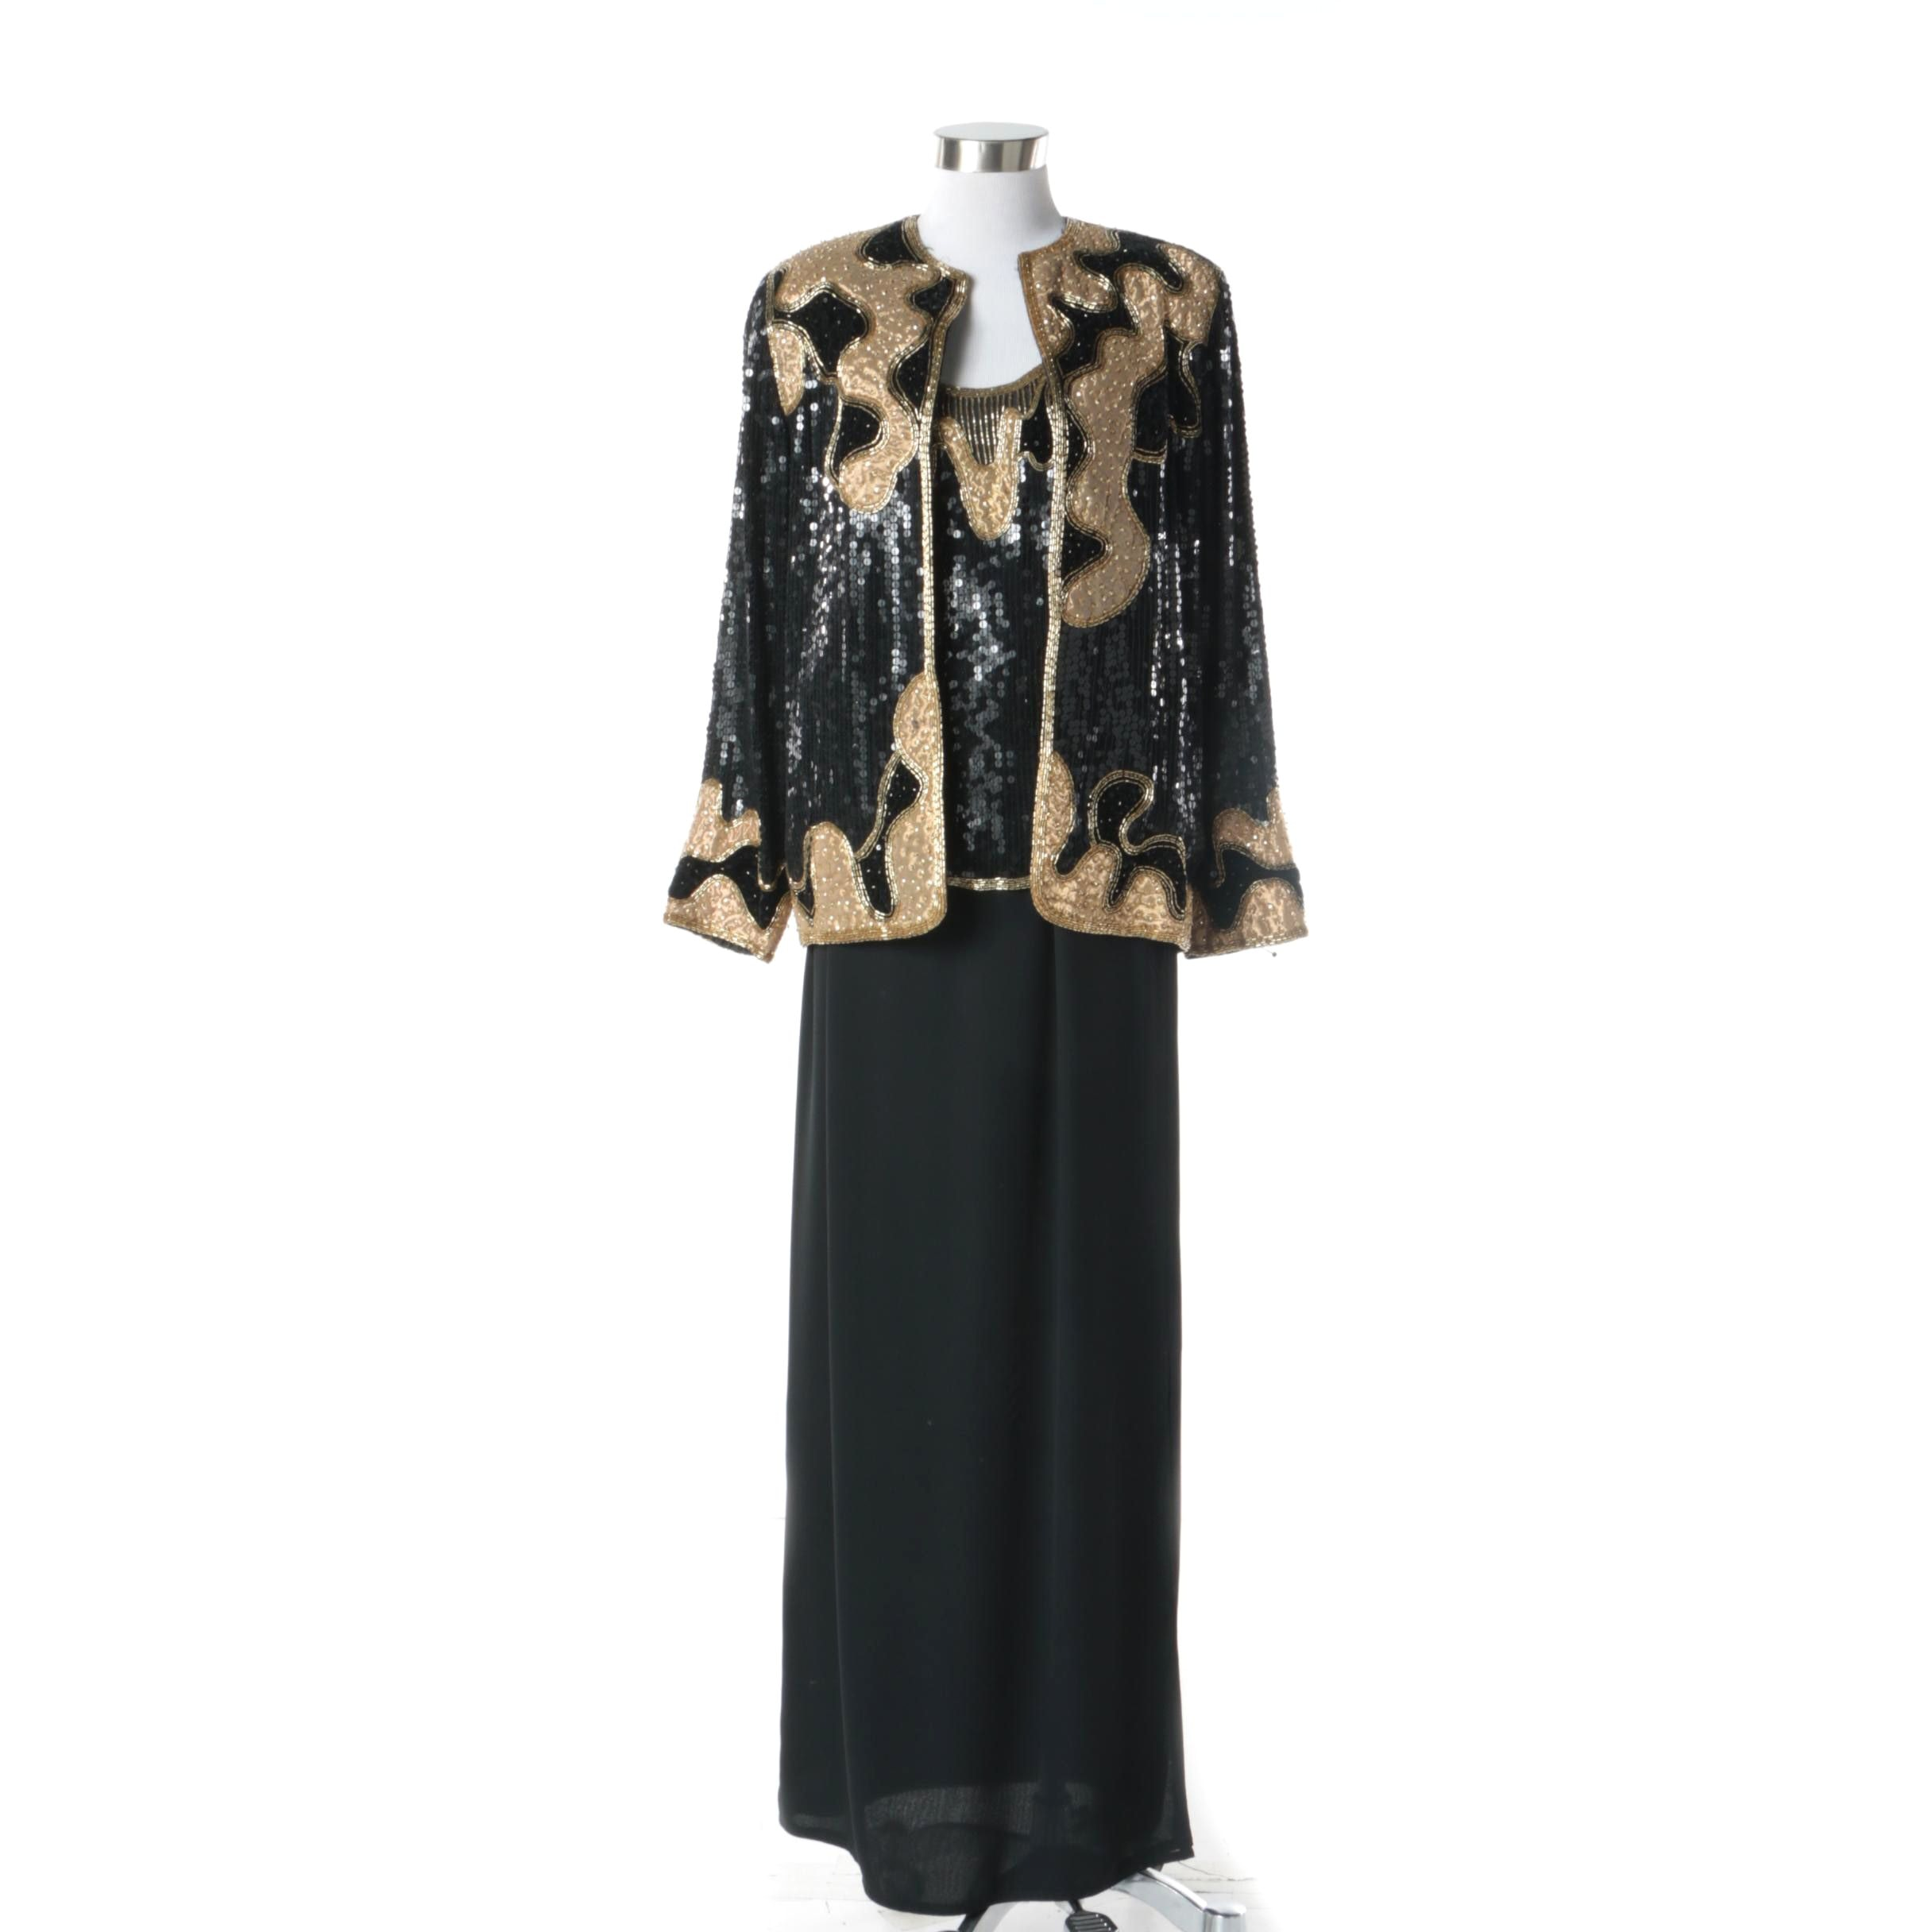 1980s Judith Ann Creations Black and Gold Silk Beaded Skirt, Blouse and Jacket